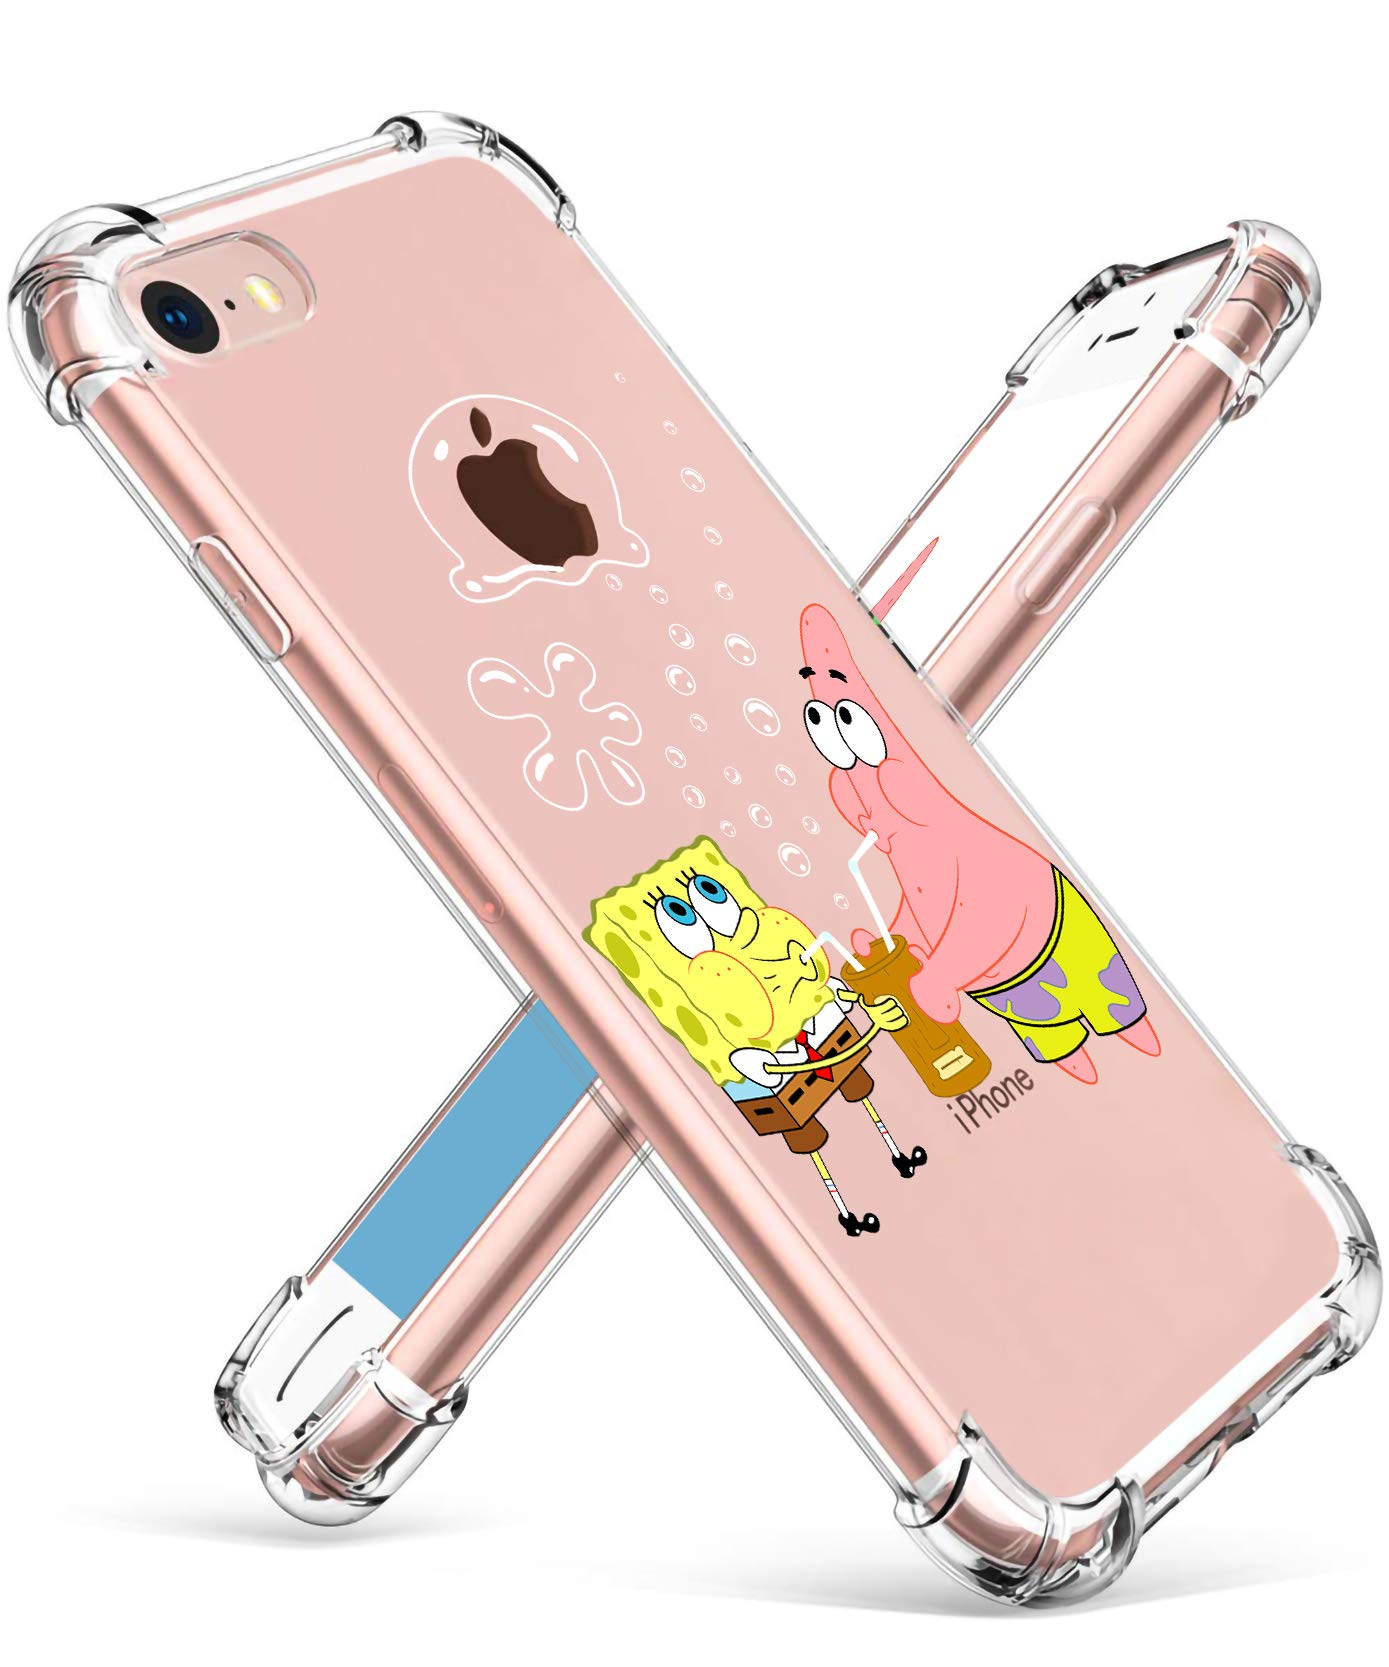 """Coralogo for iPhone 7/8 TPU Case, 3D Cute Cartoon Funny Design Stylish Character Protective Kawaii Fashion Fun Unique Cool Cover Skin Teens Kids Girls Boys Cases for iPhone 7/8 4.7"""" (Sponge Patrick"""